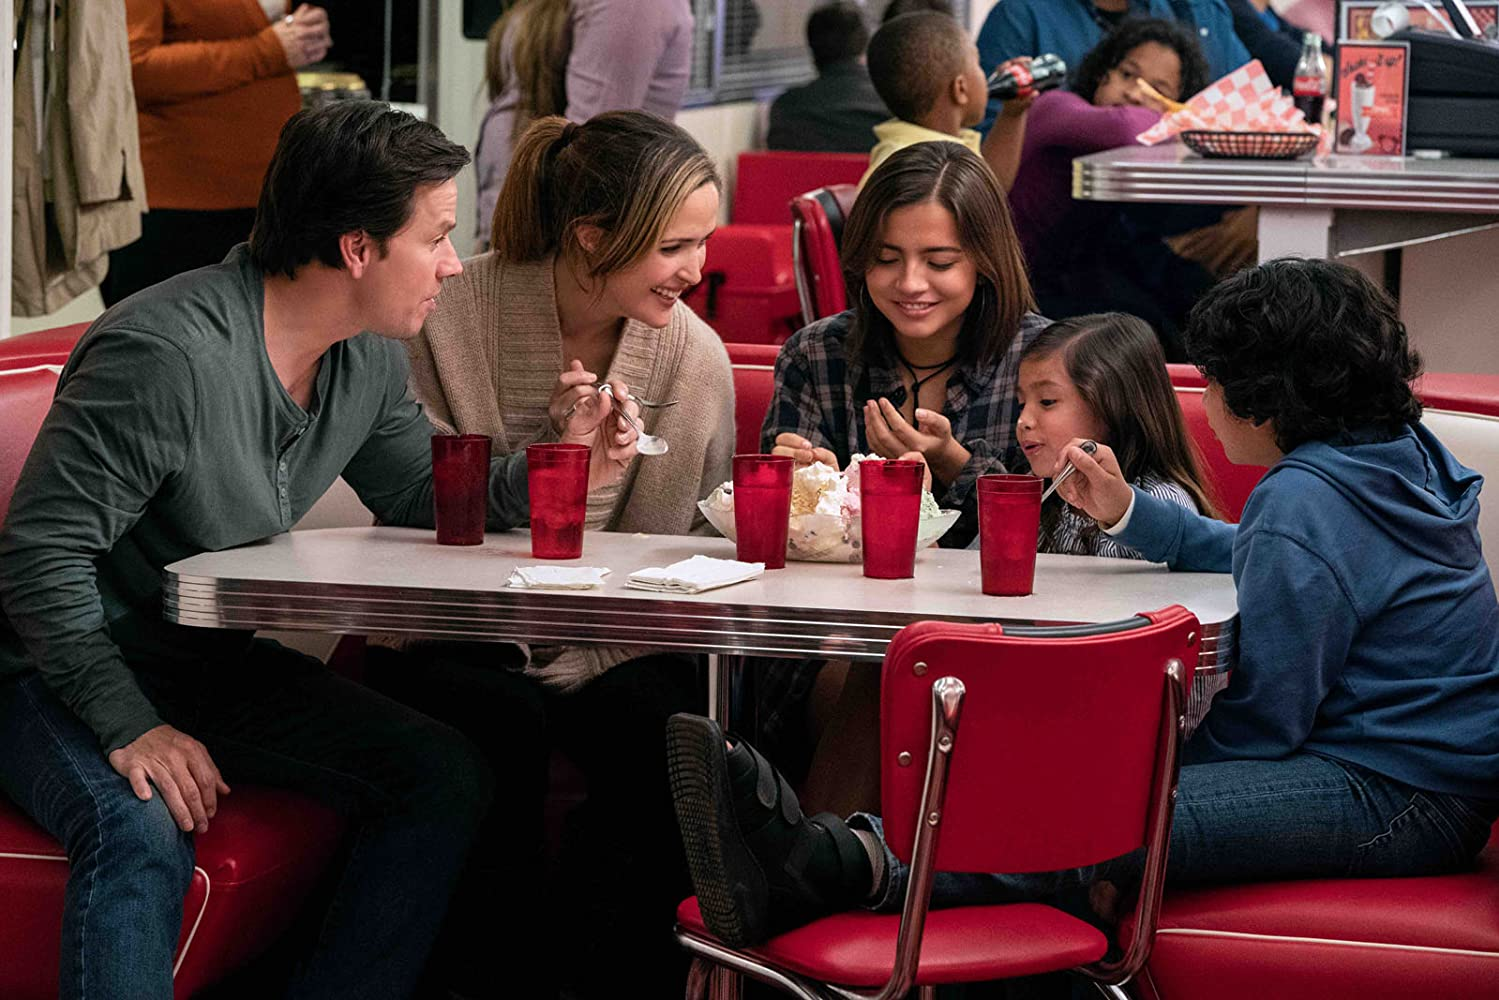 Mark Wahlberg, Rose Byrne, Gustavo Quiroz, Isabela Moner, and Julianna Gamiz in Instant Family (2018)